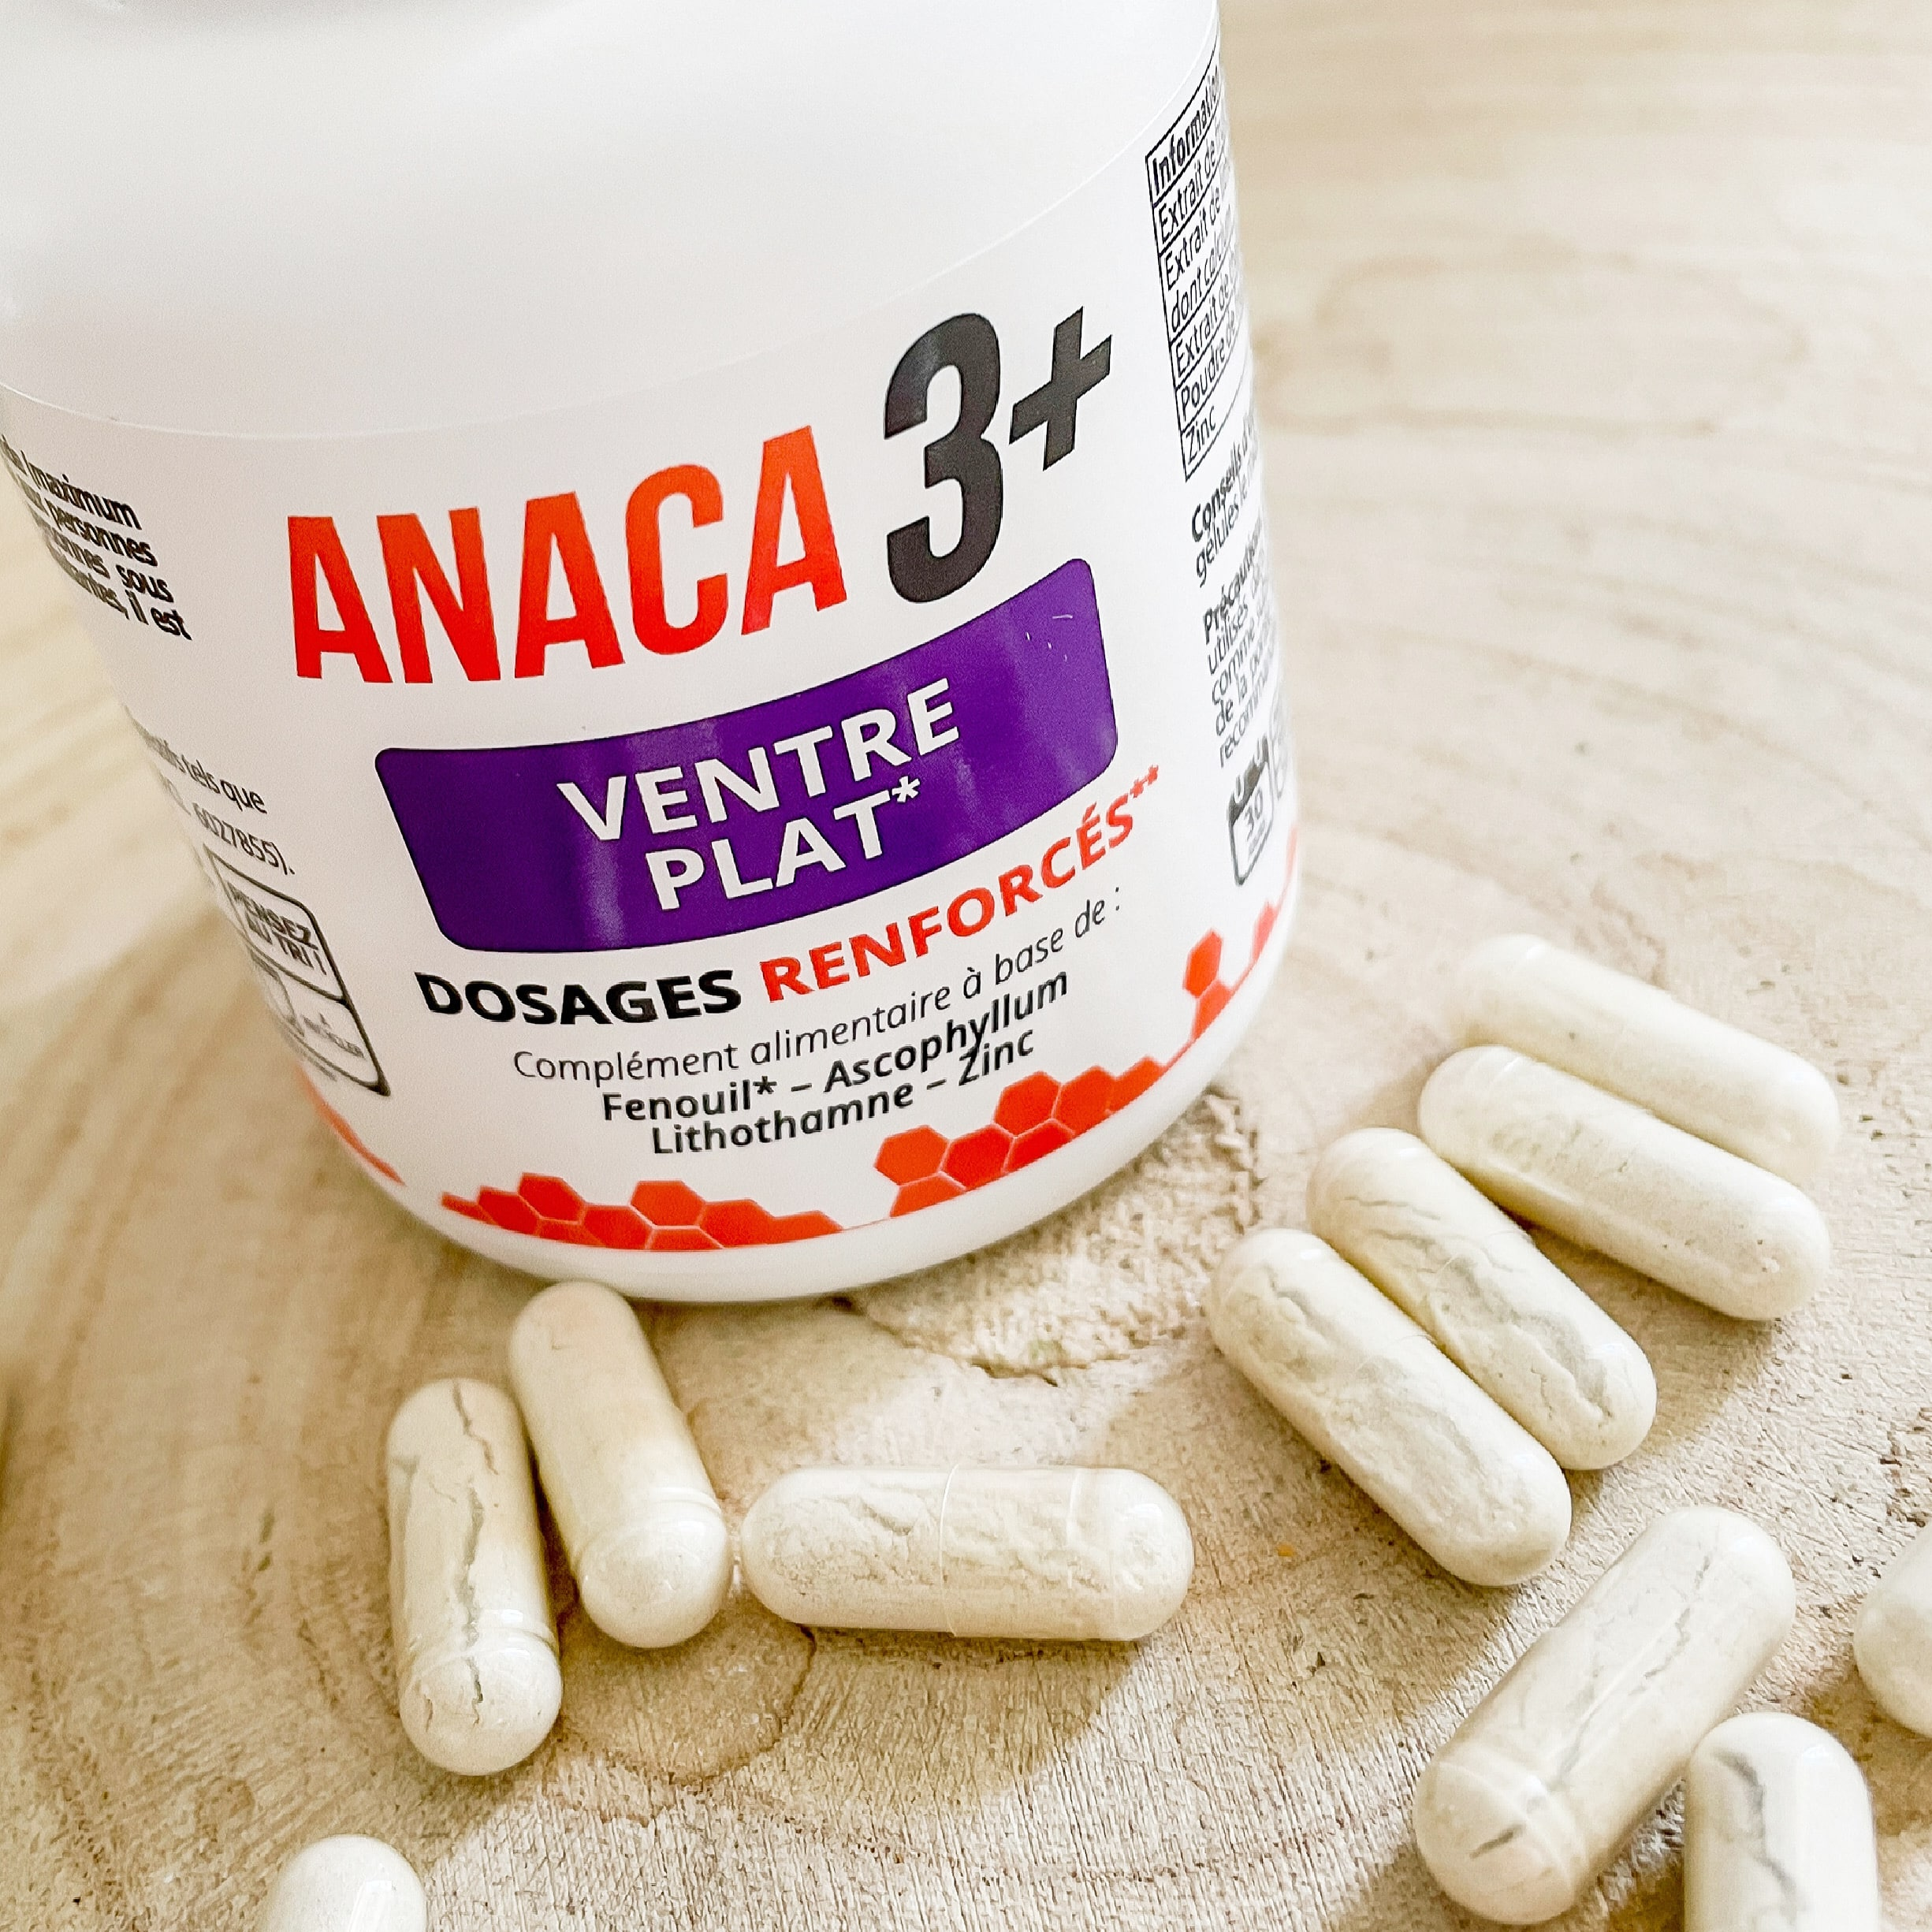 anaca3 duo ventre plat infusion complement alimentaire minceur morandmors Summer